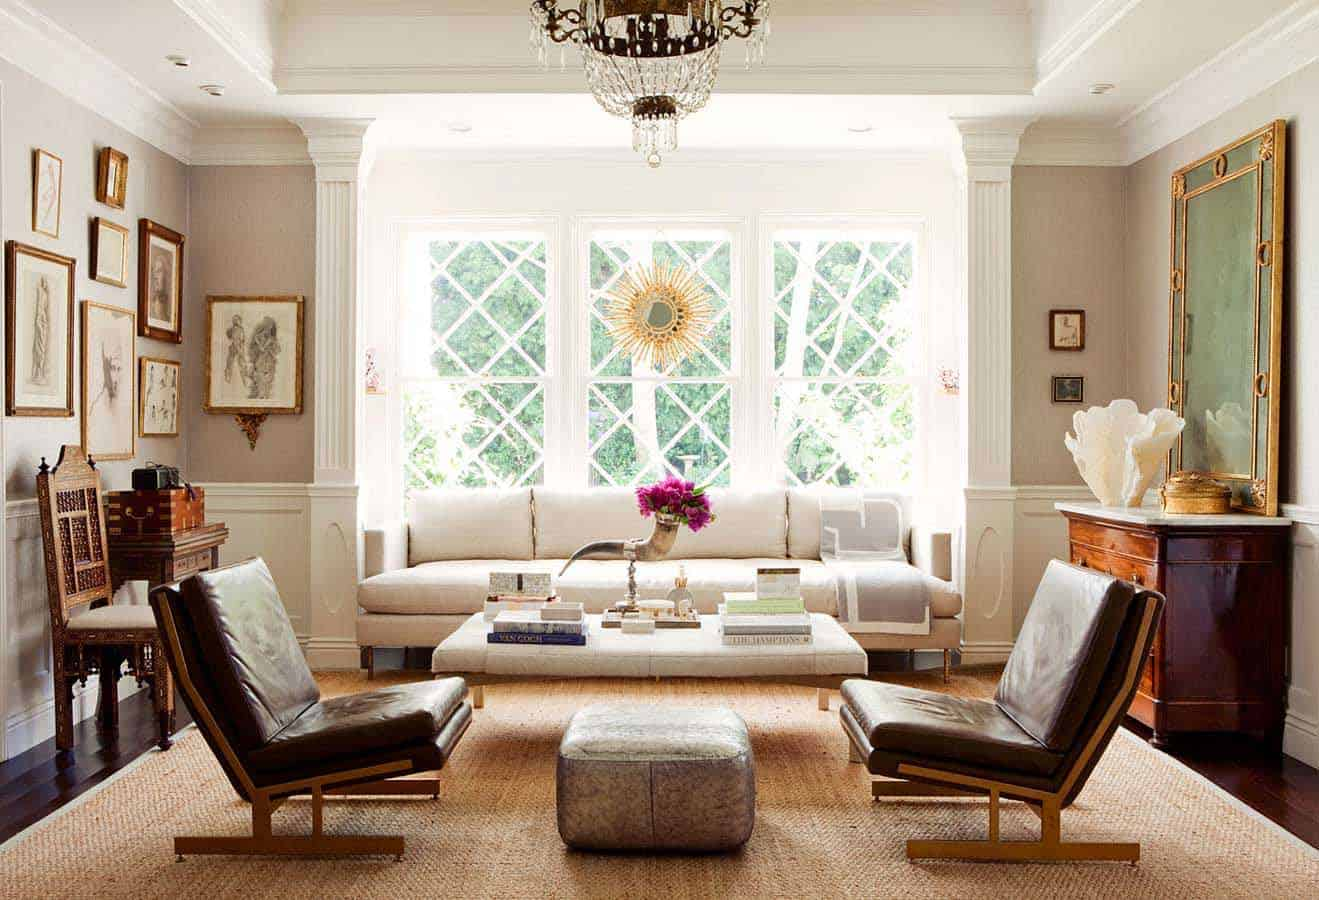 Living Room Furniture Arrangement Arranging Living Room Furniture Kristina Wolf Design